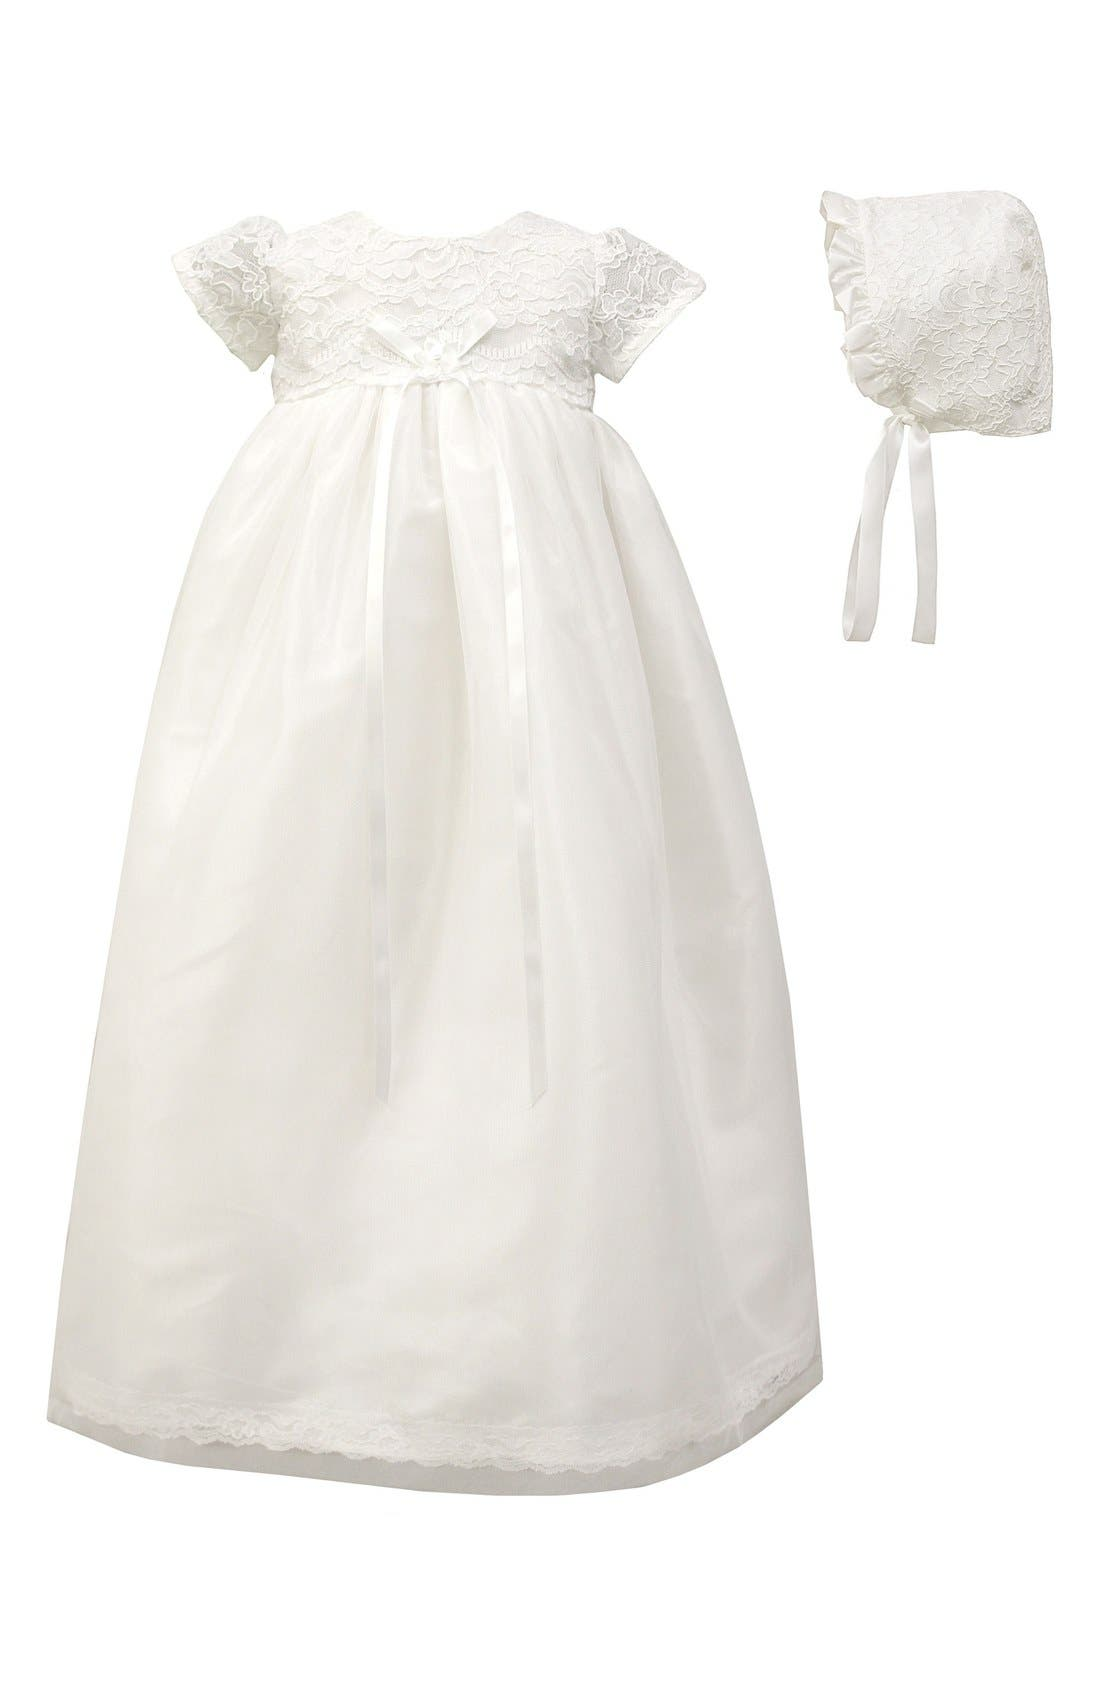 C.I. CASTRO & CO. Scalloped Lace Christening Gown & Bonnet Set, Main, color, WHITE